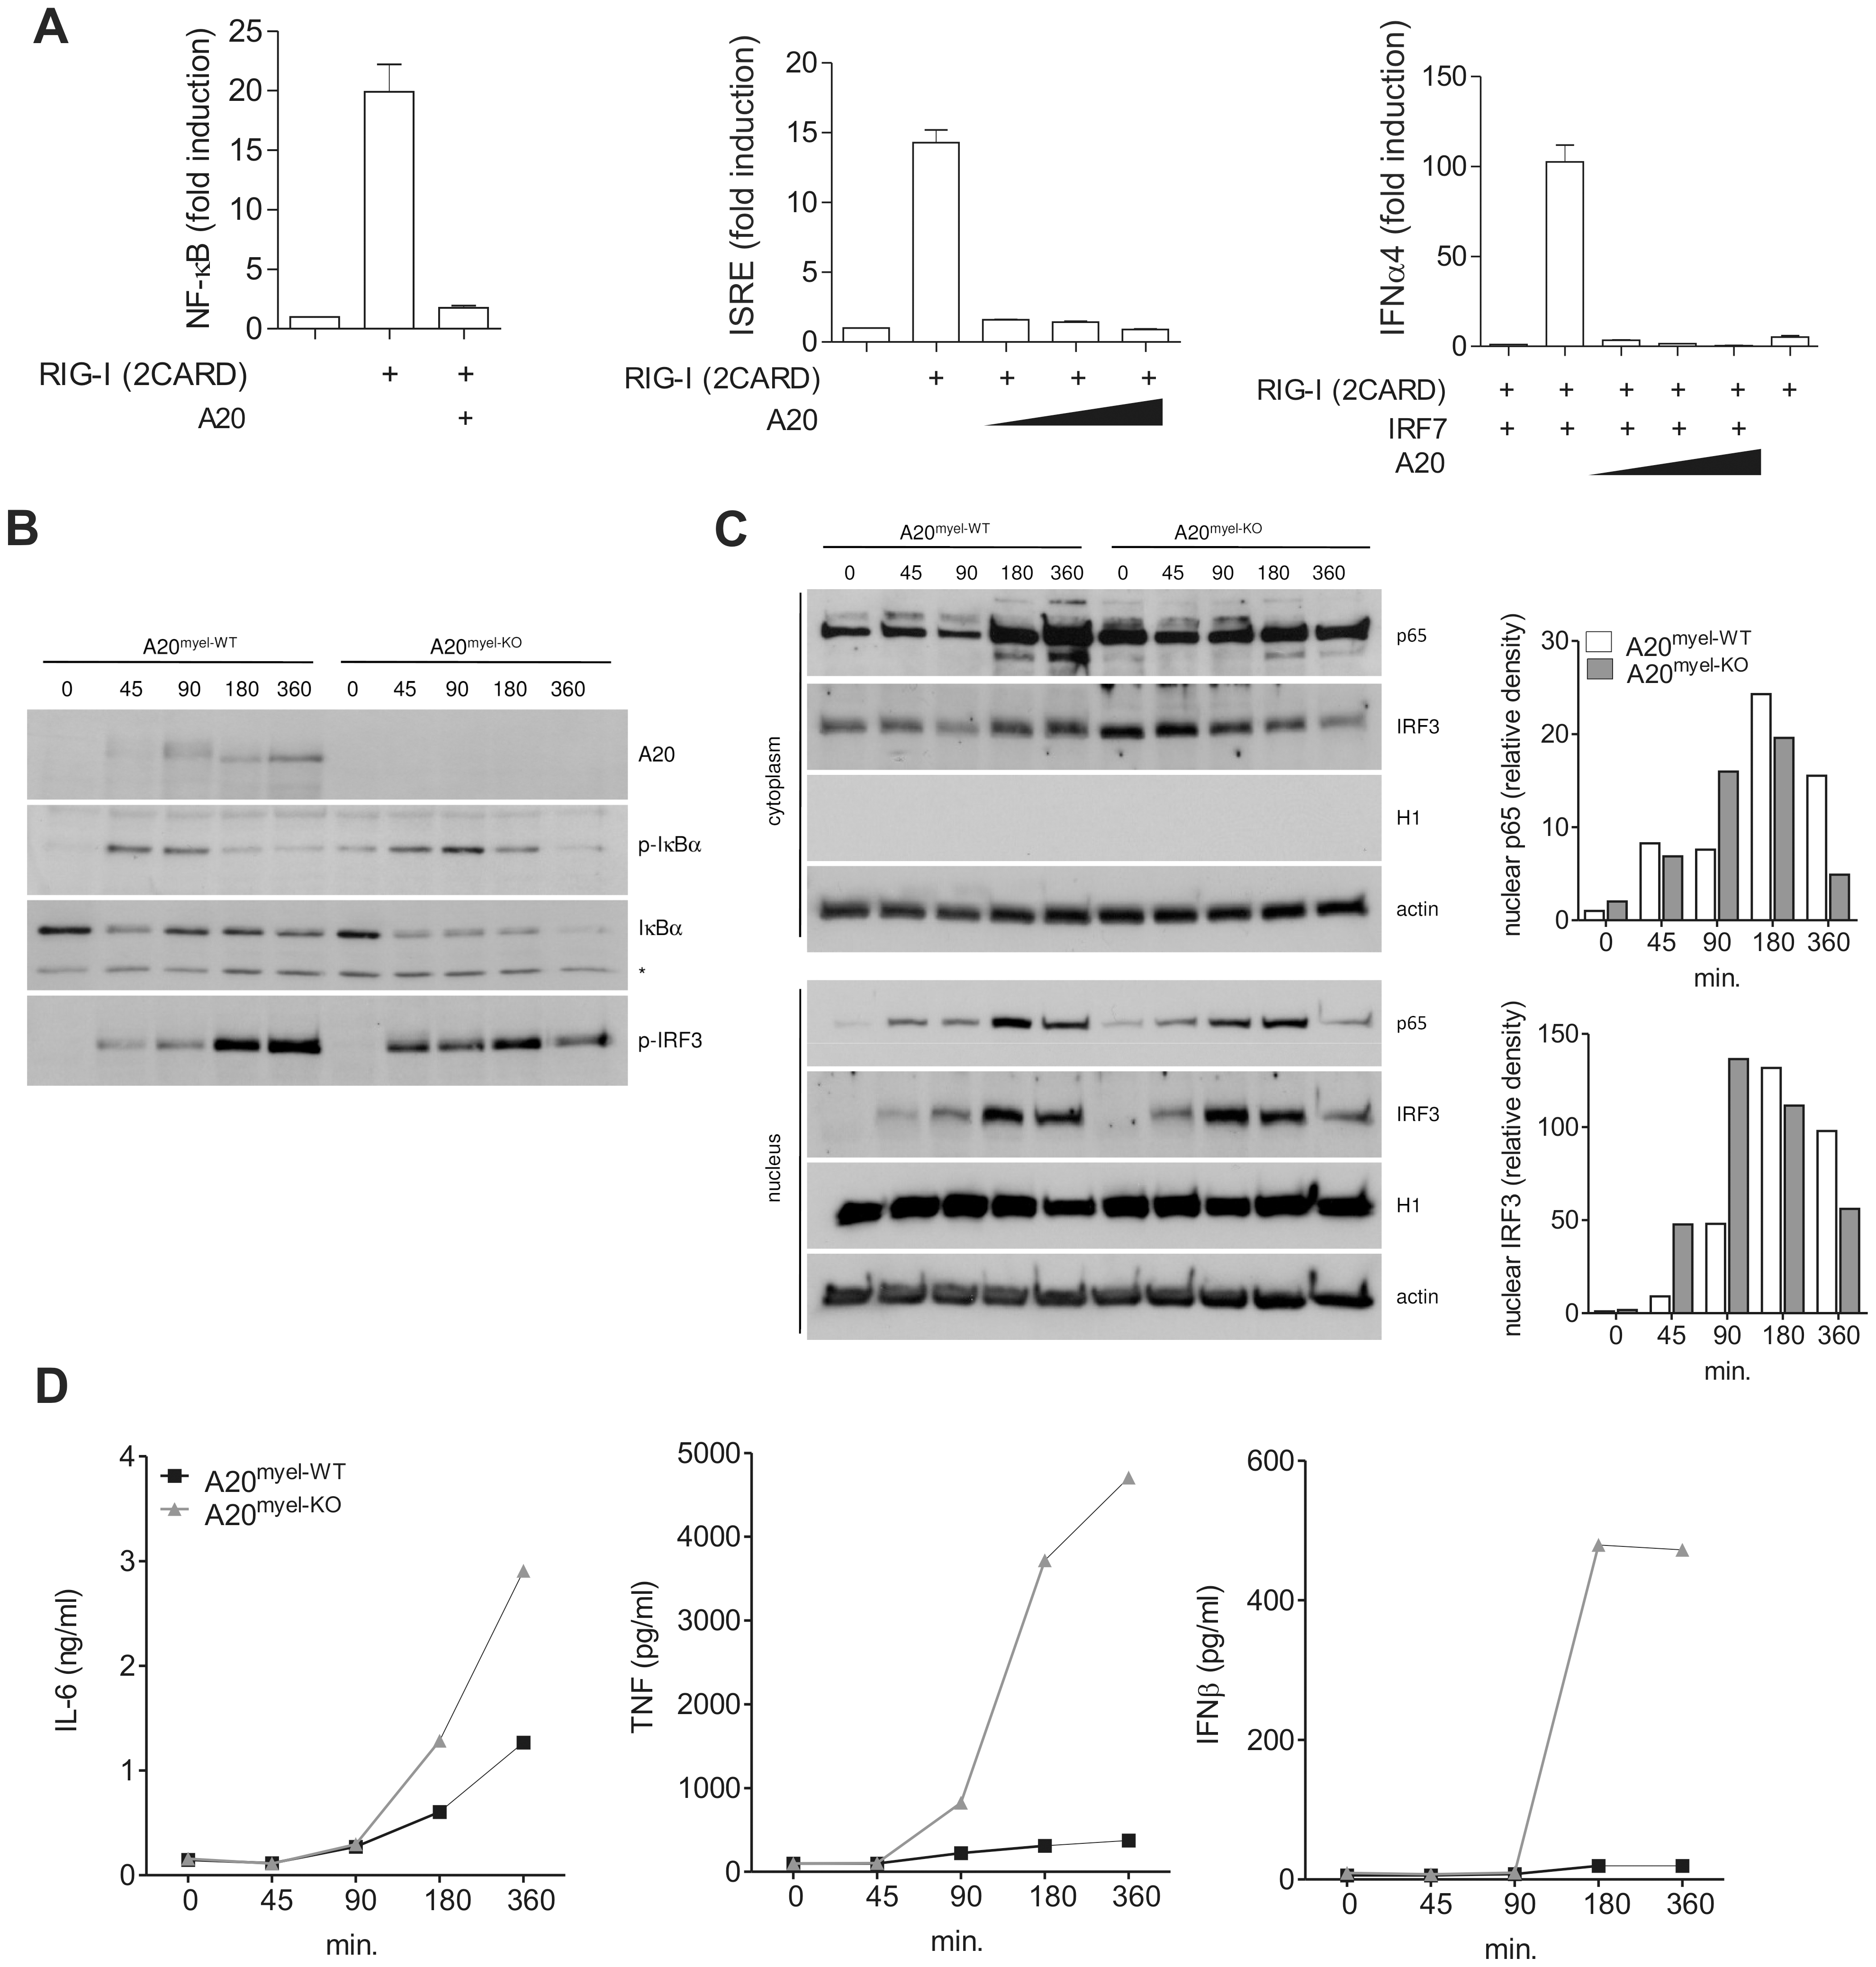 A20 inhibits NF-κB and IRF3 activation in response to RIG-I stimulation.